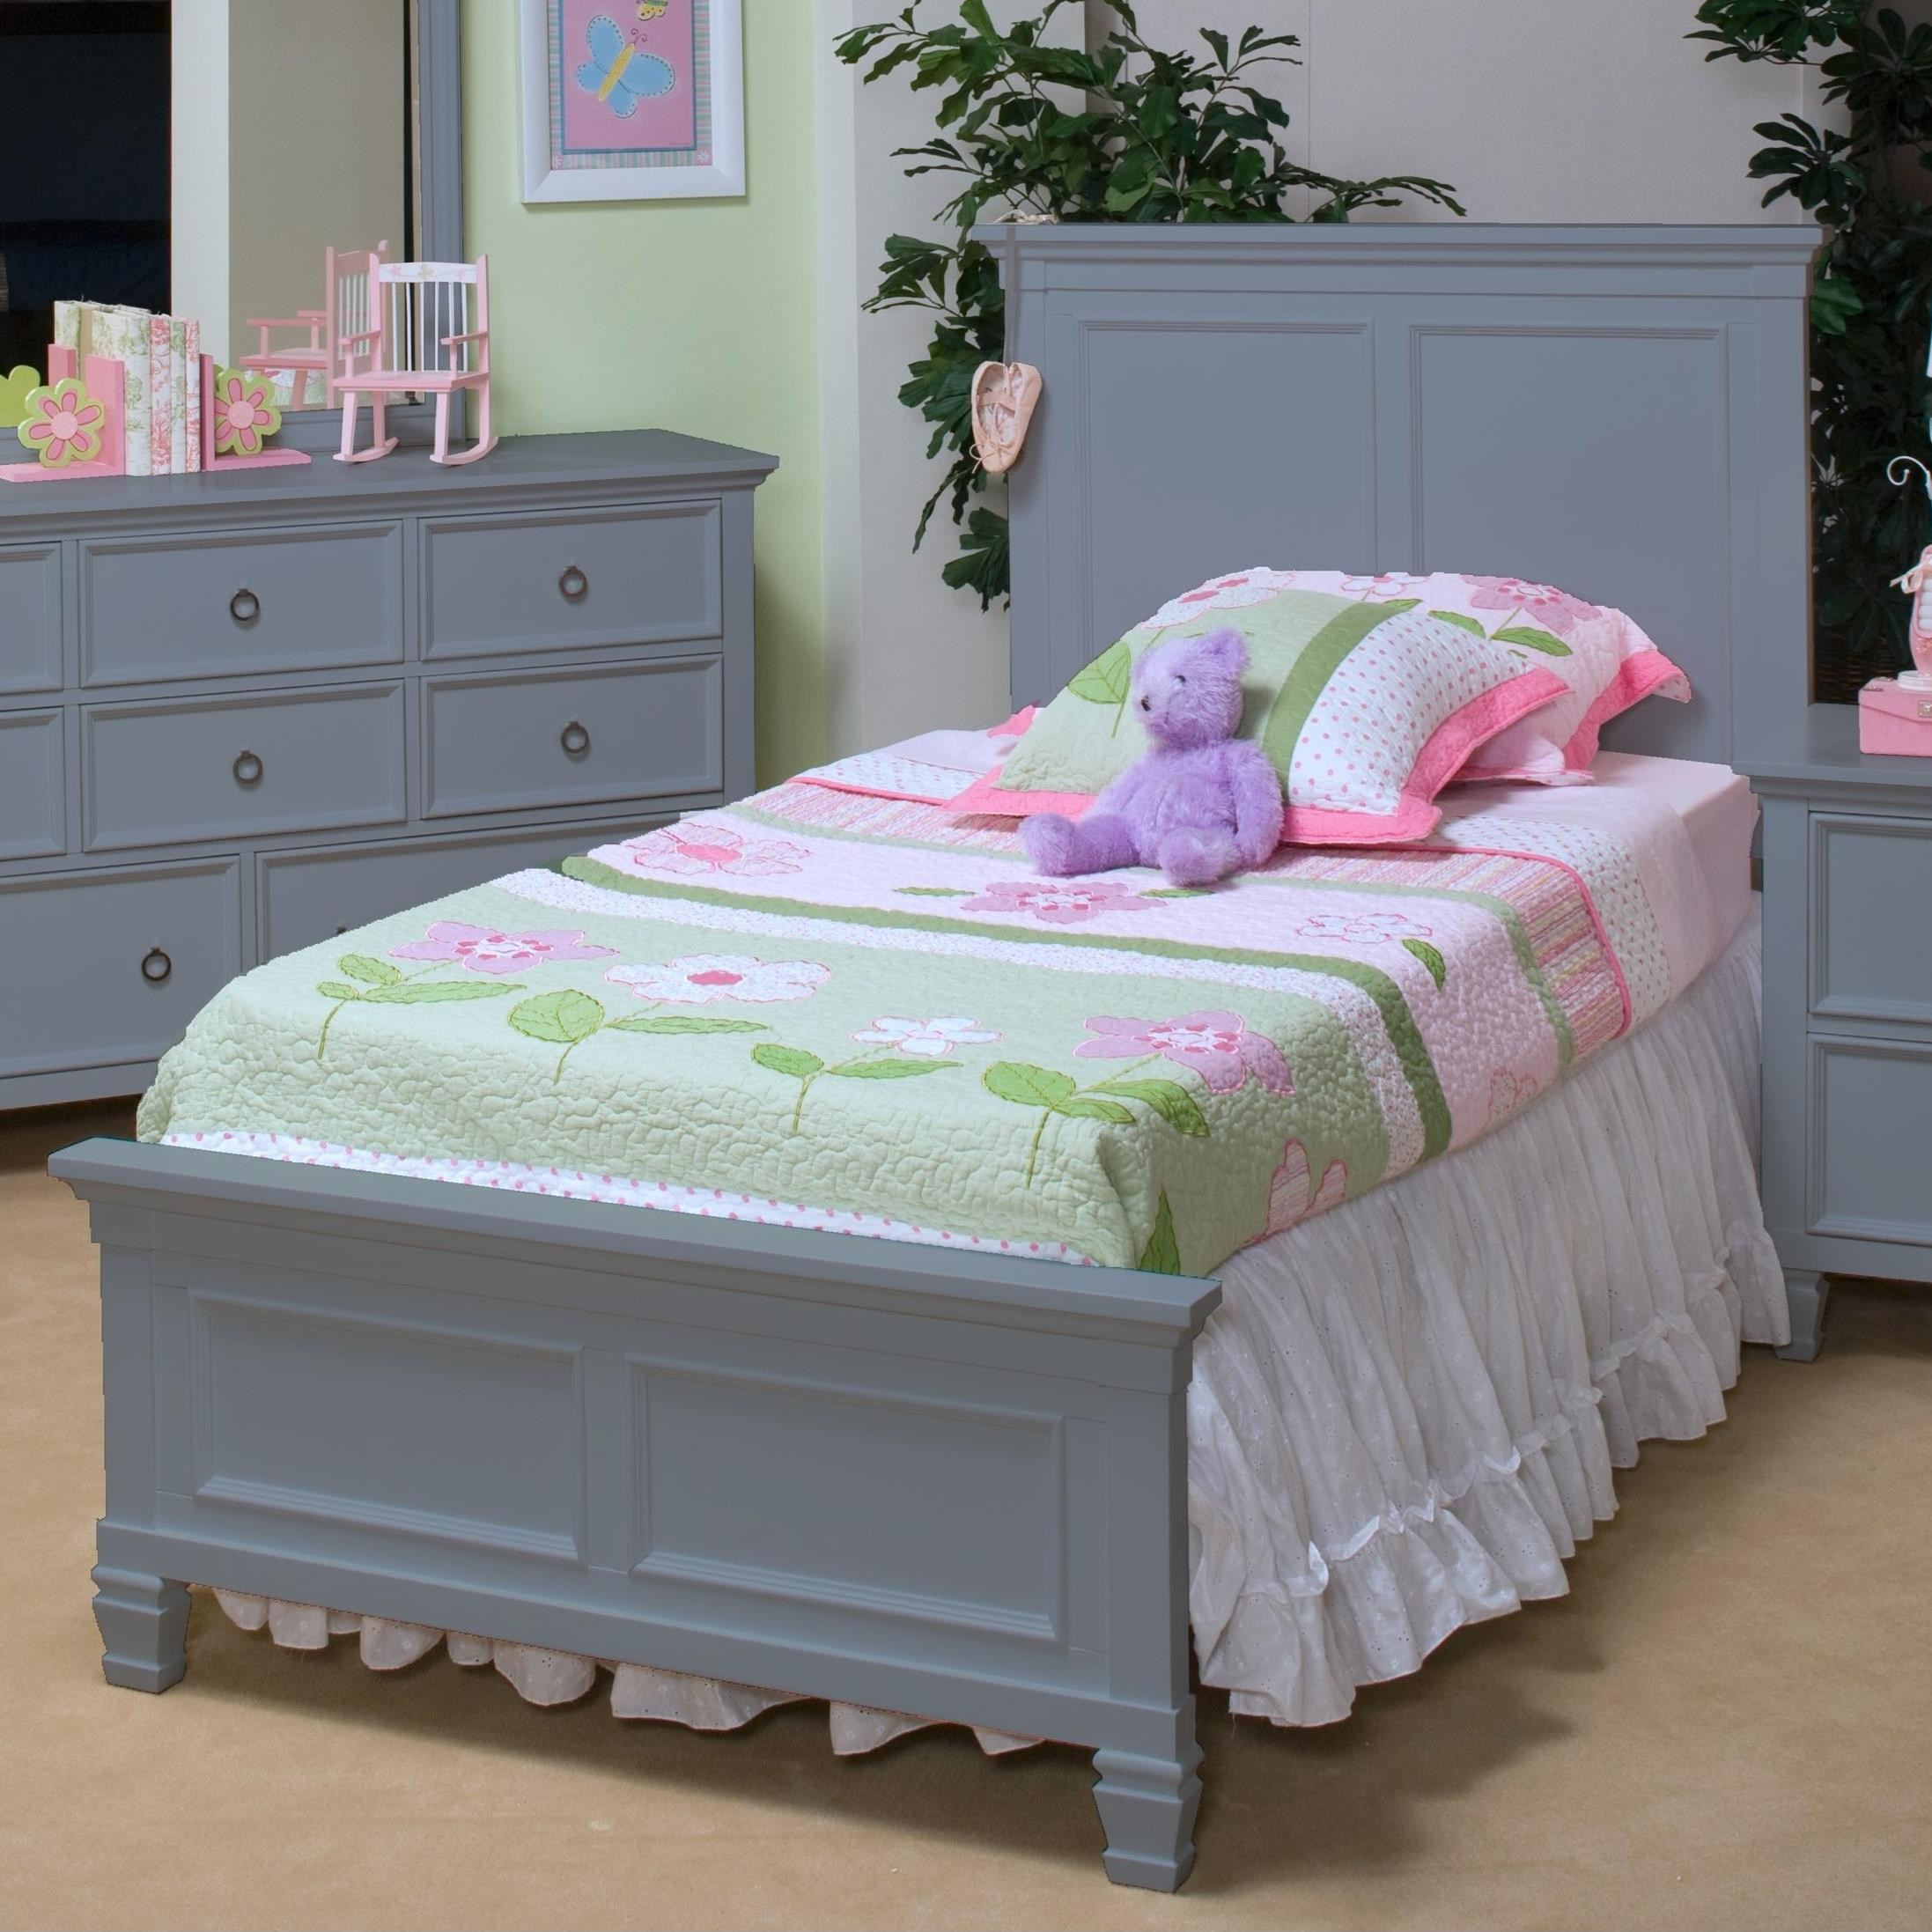 Tamarack Full Panel Bed by New Classic at Beds N Stuff